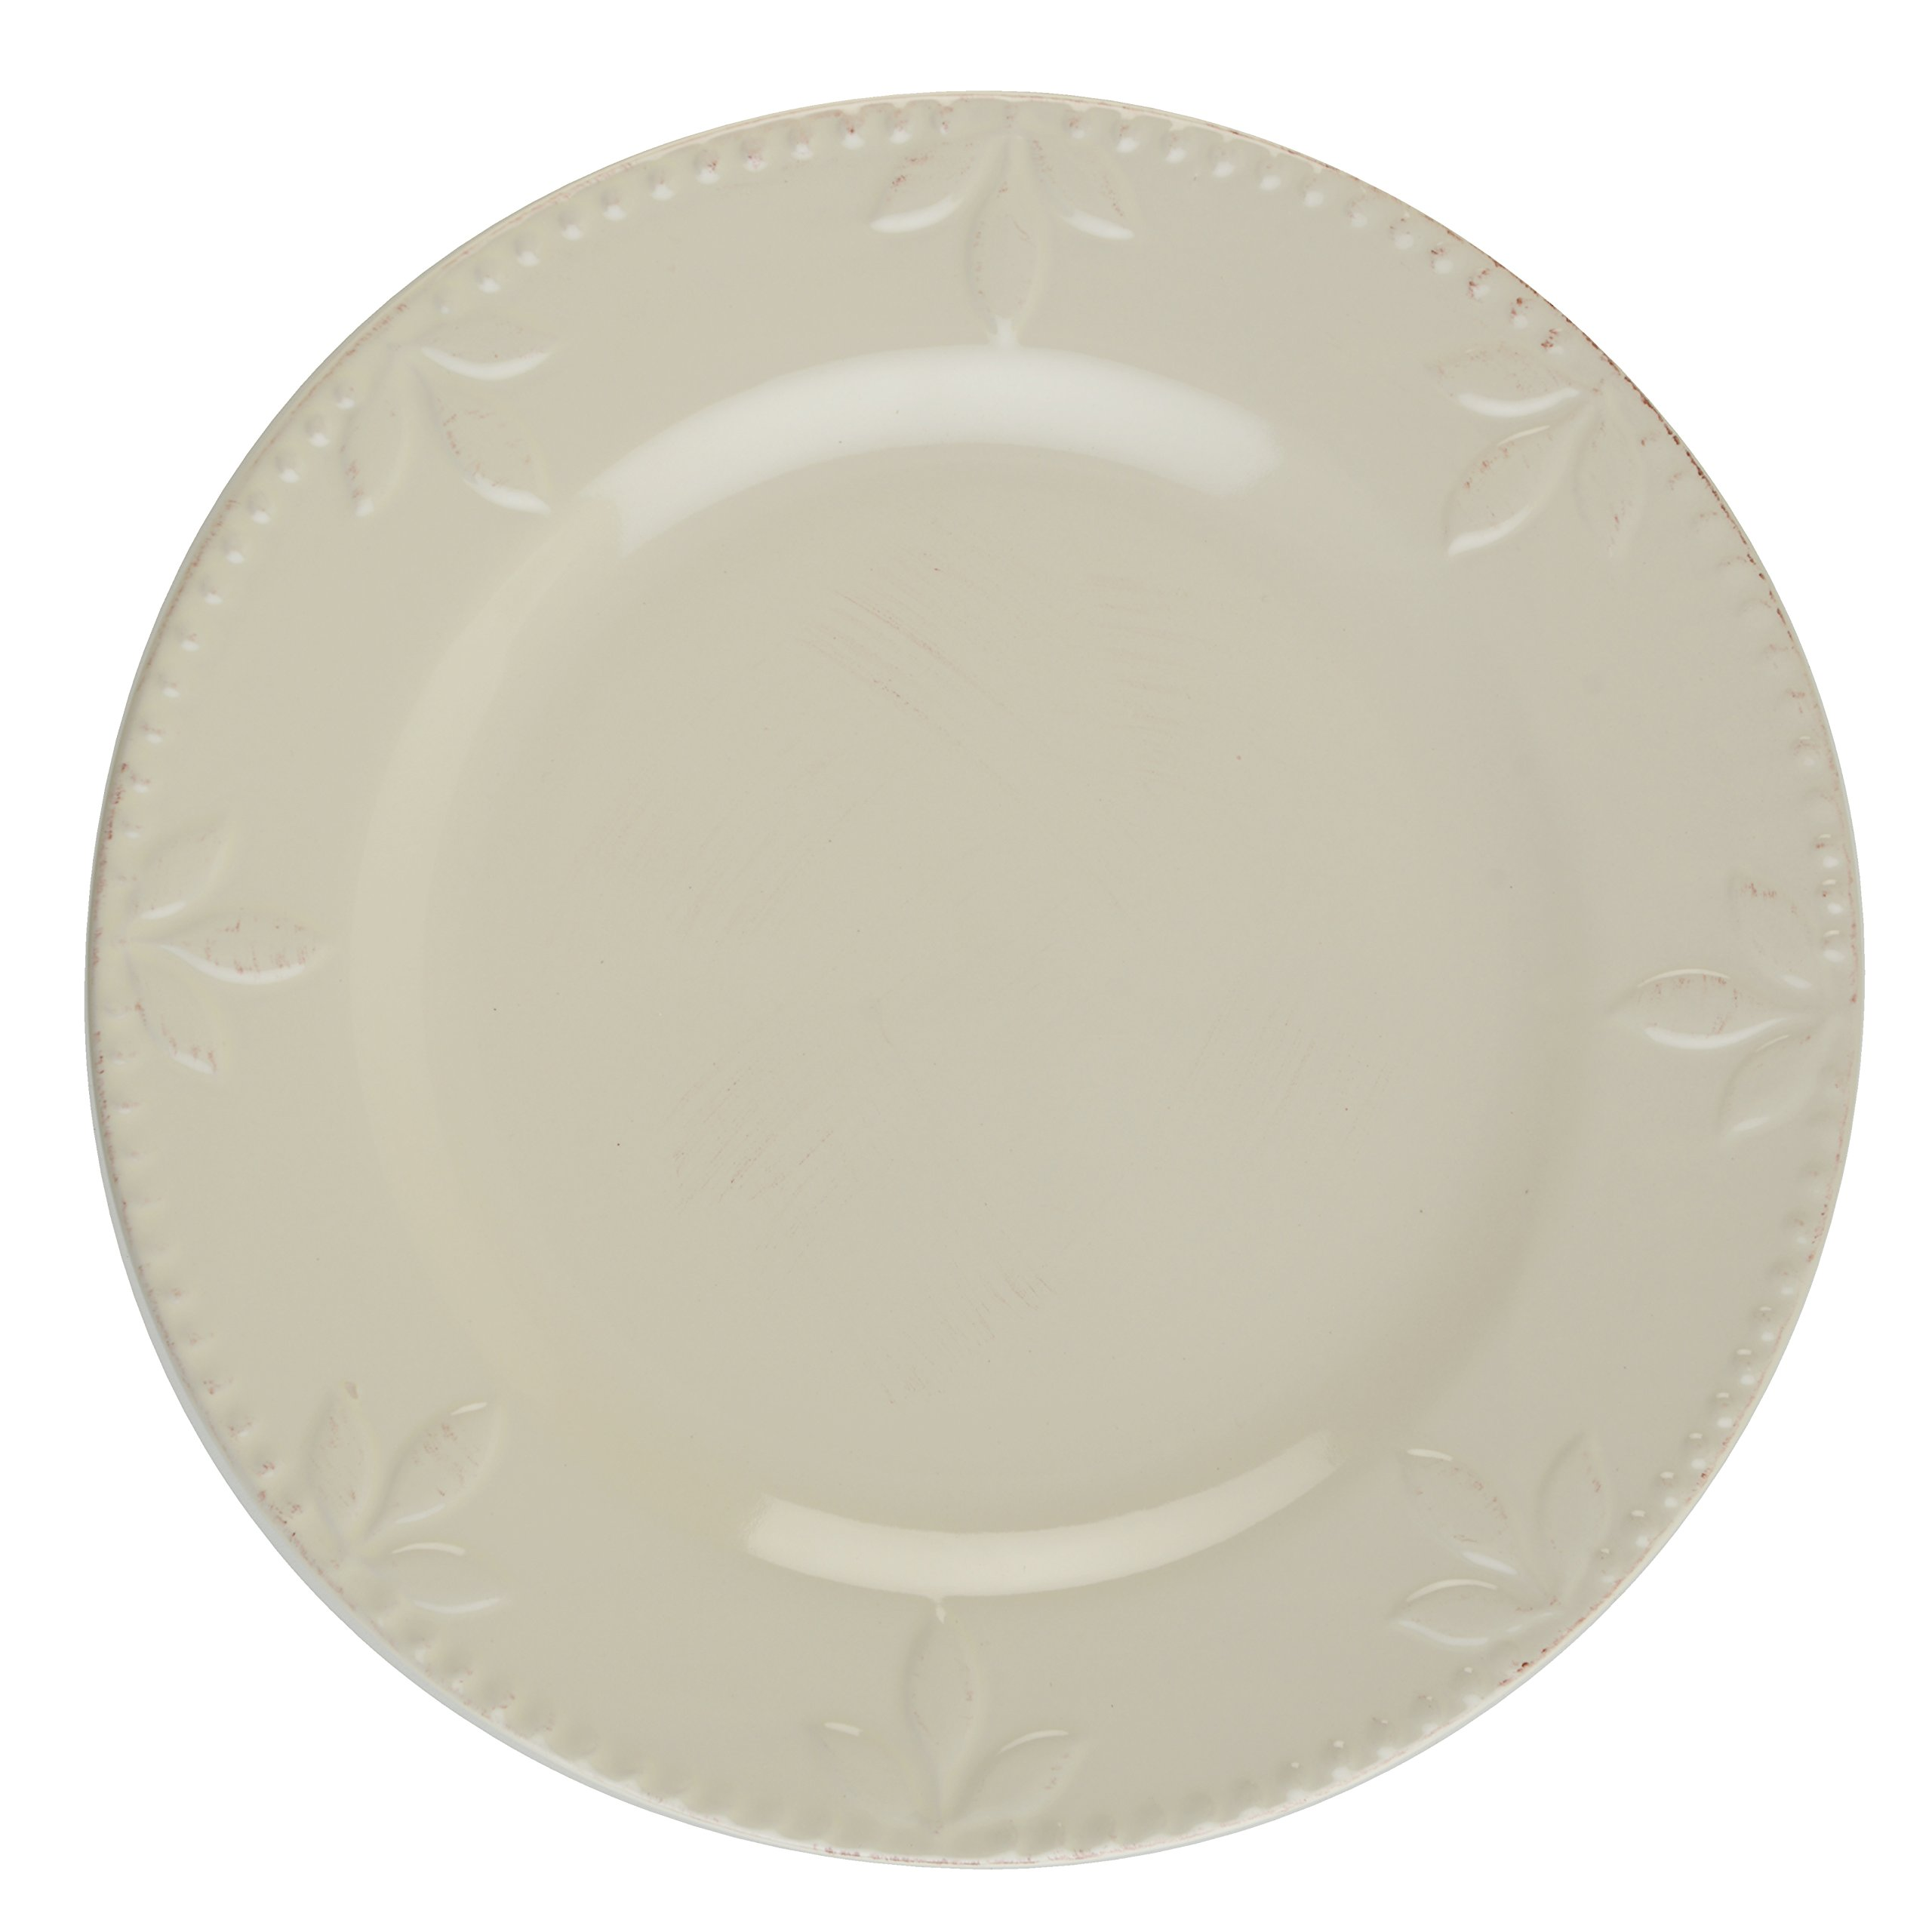 Signature Housewares Sorrento Collection Set of 4 Dinner Plates, 11-Inch, Ivory